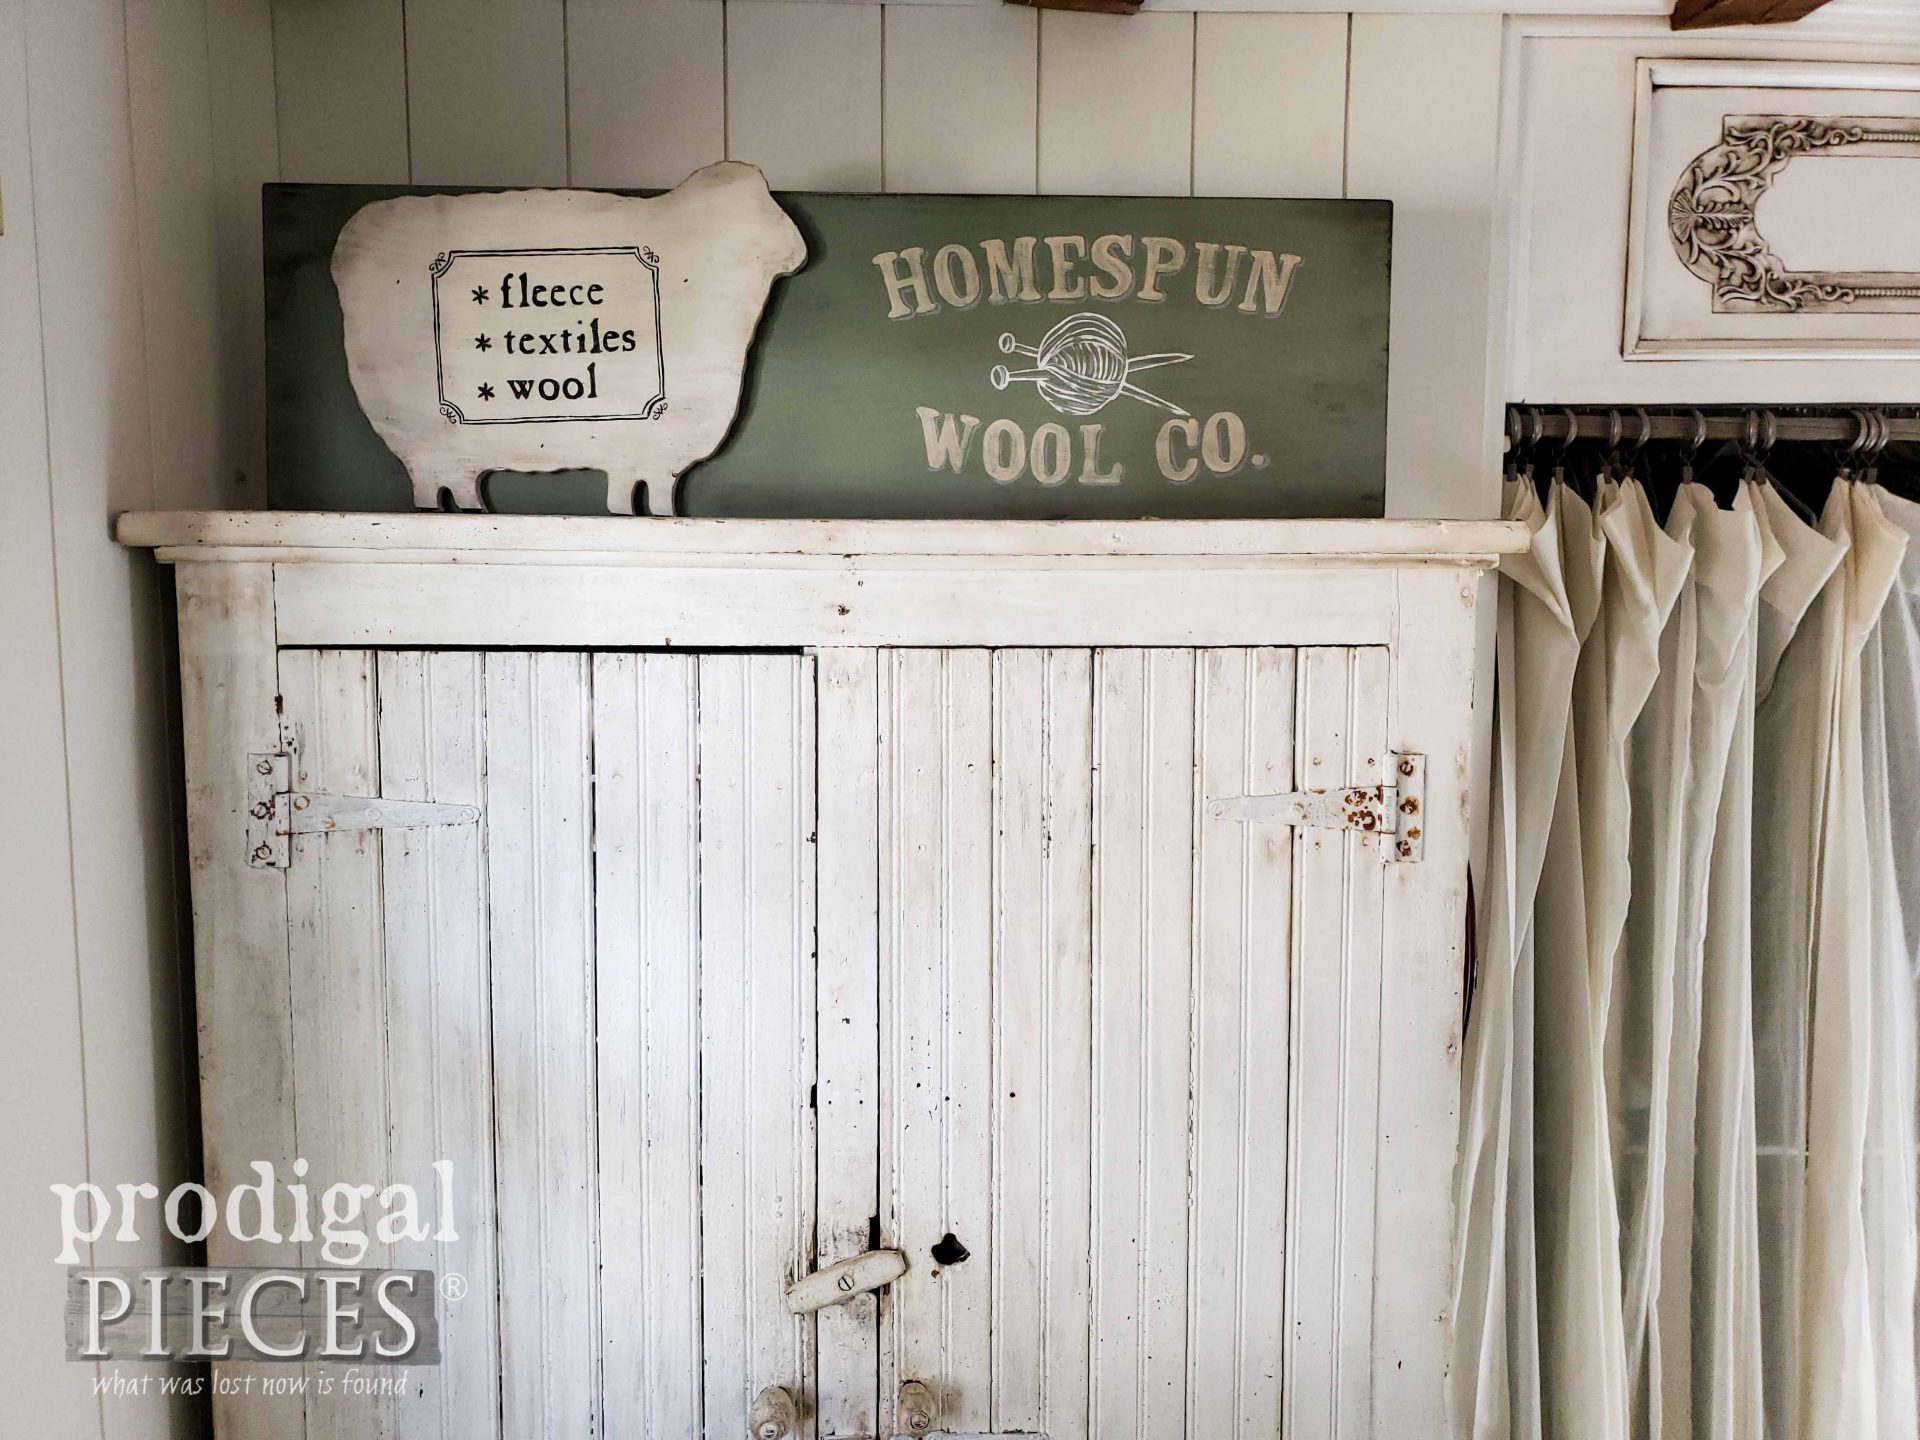 Homespun Wool Co. Farmhouse Sign Tutorial by Larissa of Prodigal Pieces | prodigalpieces.com #prodigalpieces #farmhouse #home #diy #homedecor